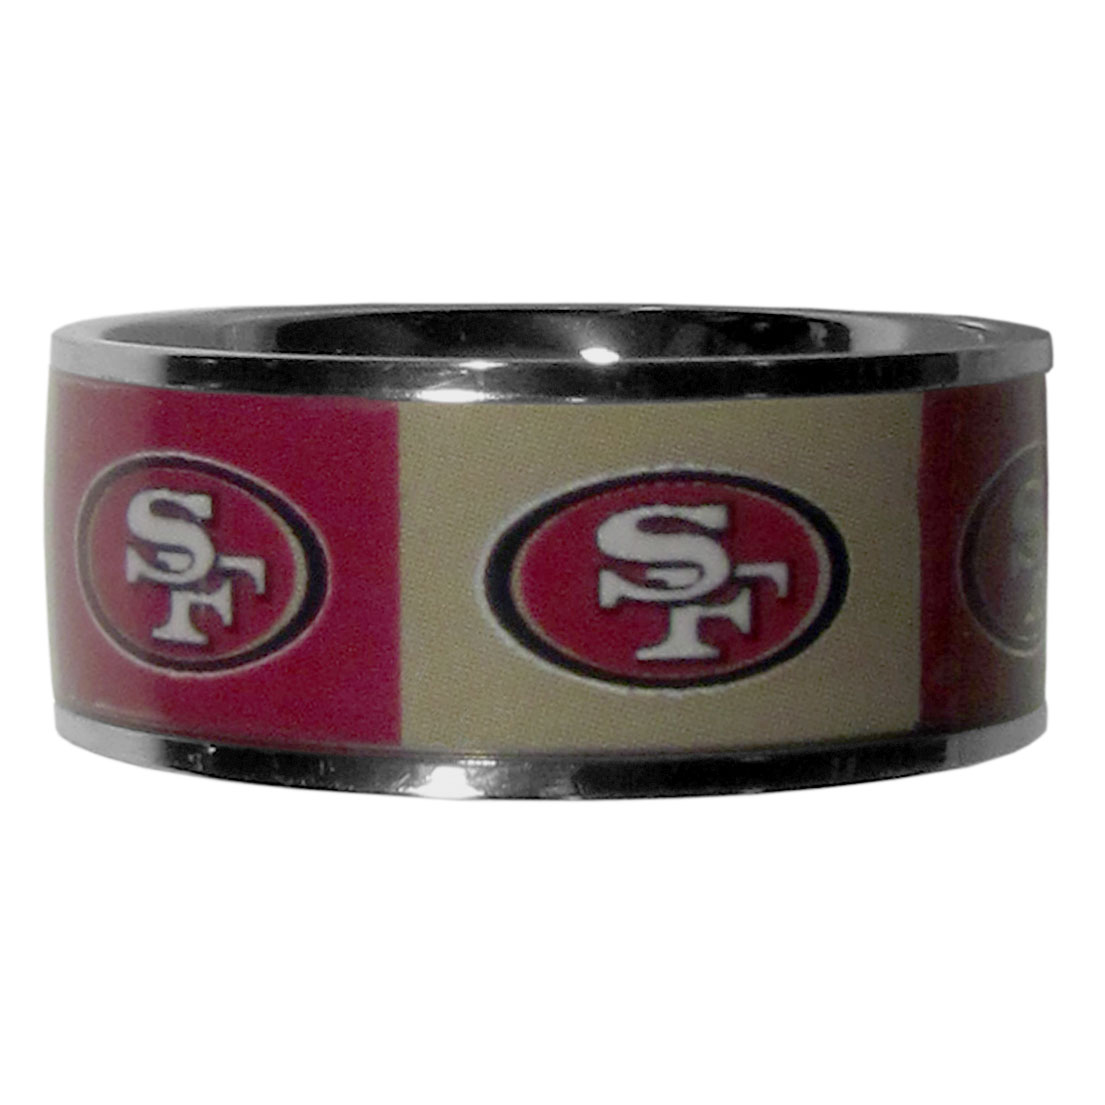 San Francisco 49ers Steel Inlaid Ring Size 10 - Our high-quality San Francisco 49ers stainless steel ring is a classy way to show off your team pride. The ring features crisp, inlaid team graphics.